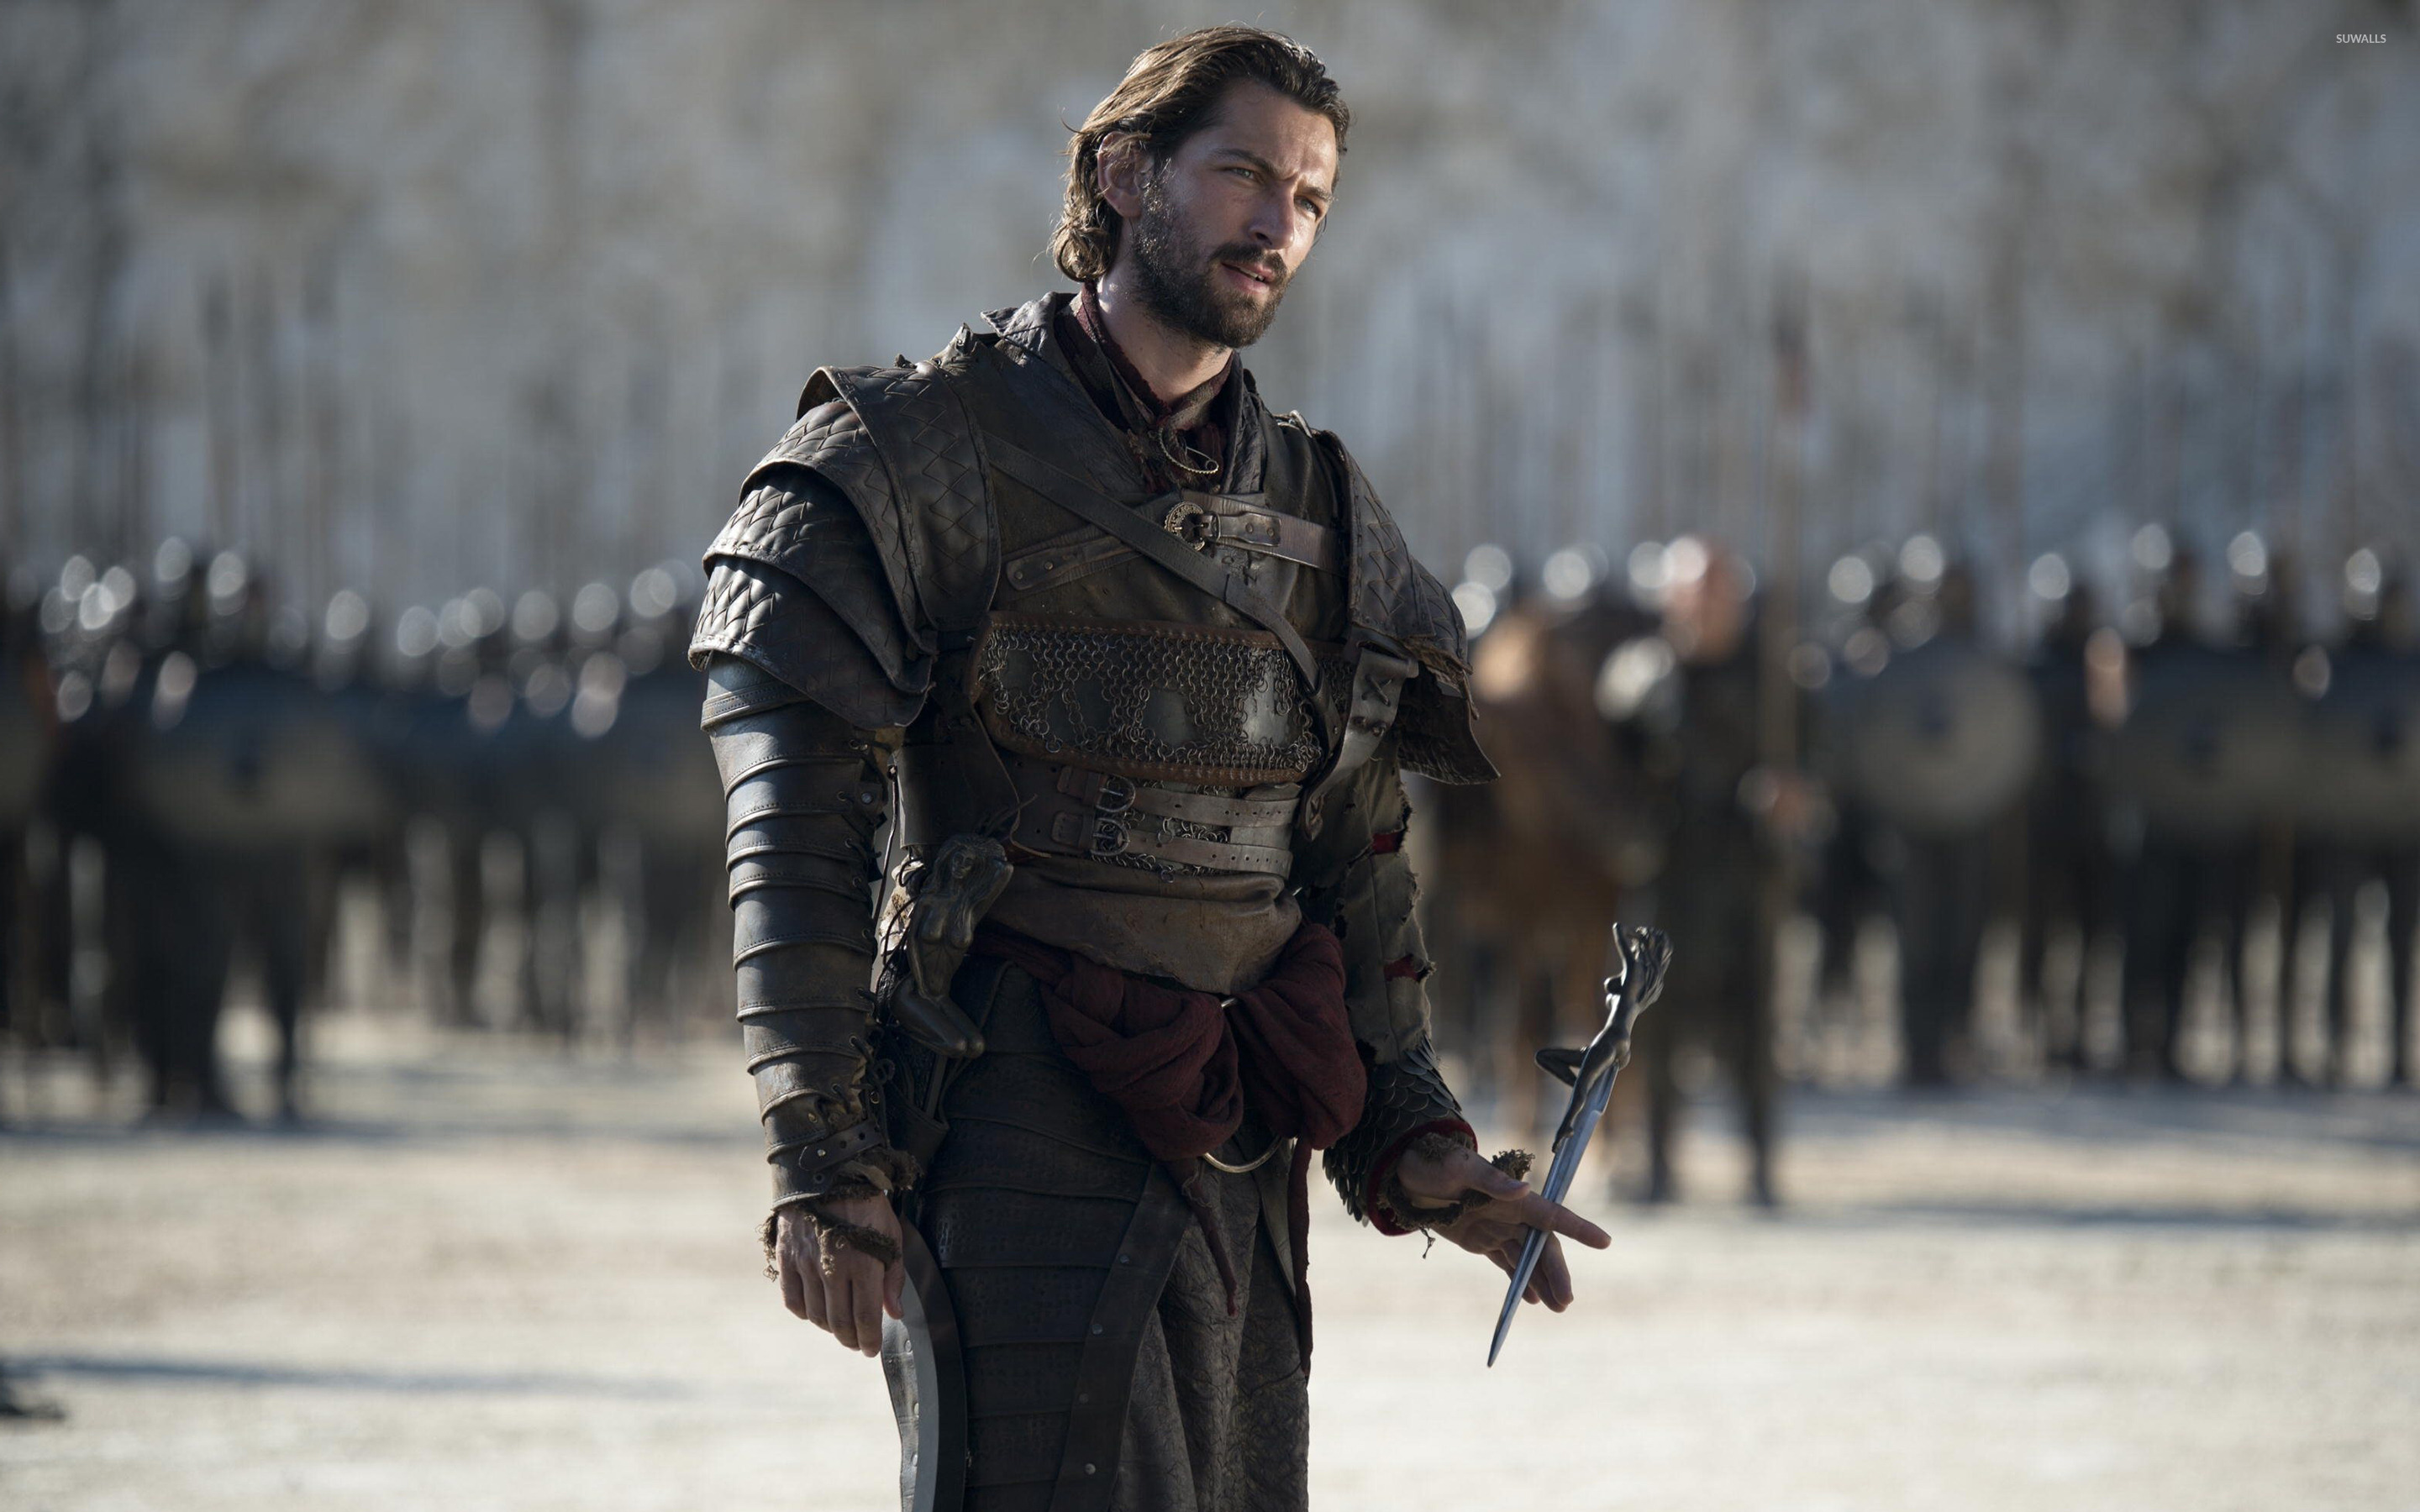 Daario Naharis wallpaper - TV Show wallpapers - #31680 Daario Naharis Arakh